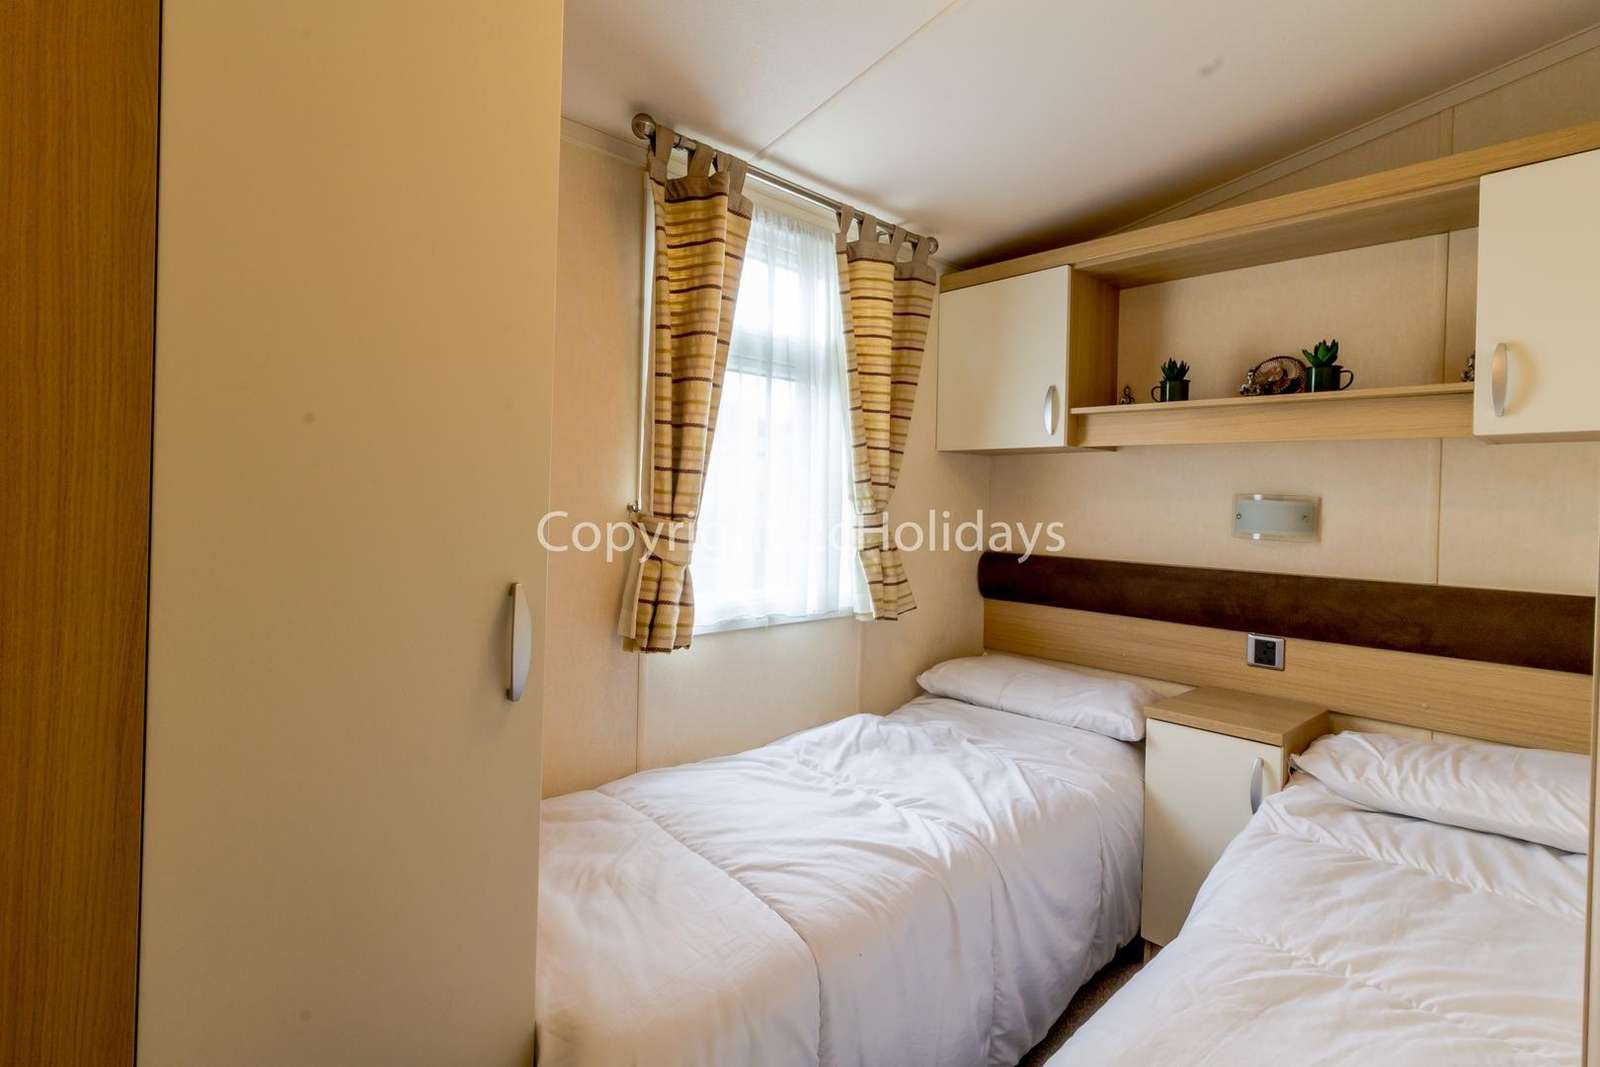 You can find lots of storage space in this twin bedroom